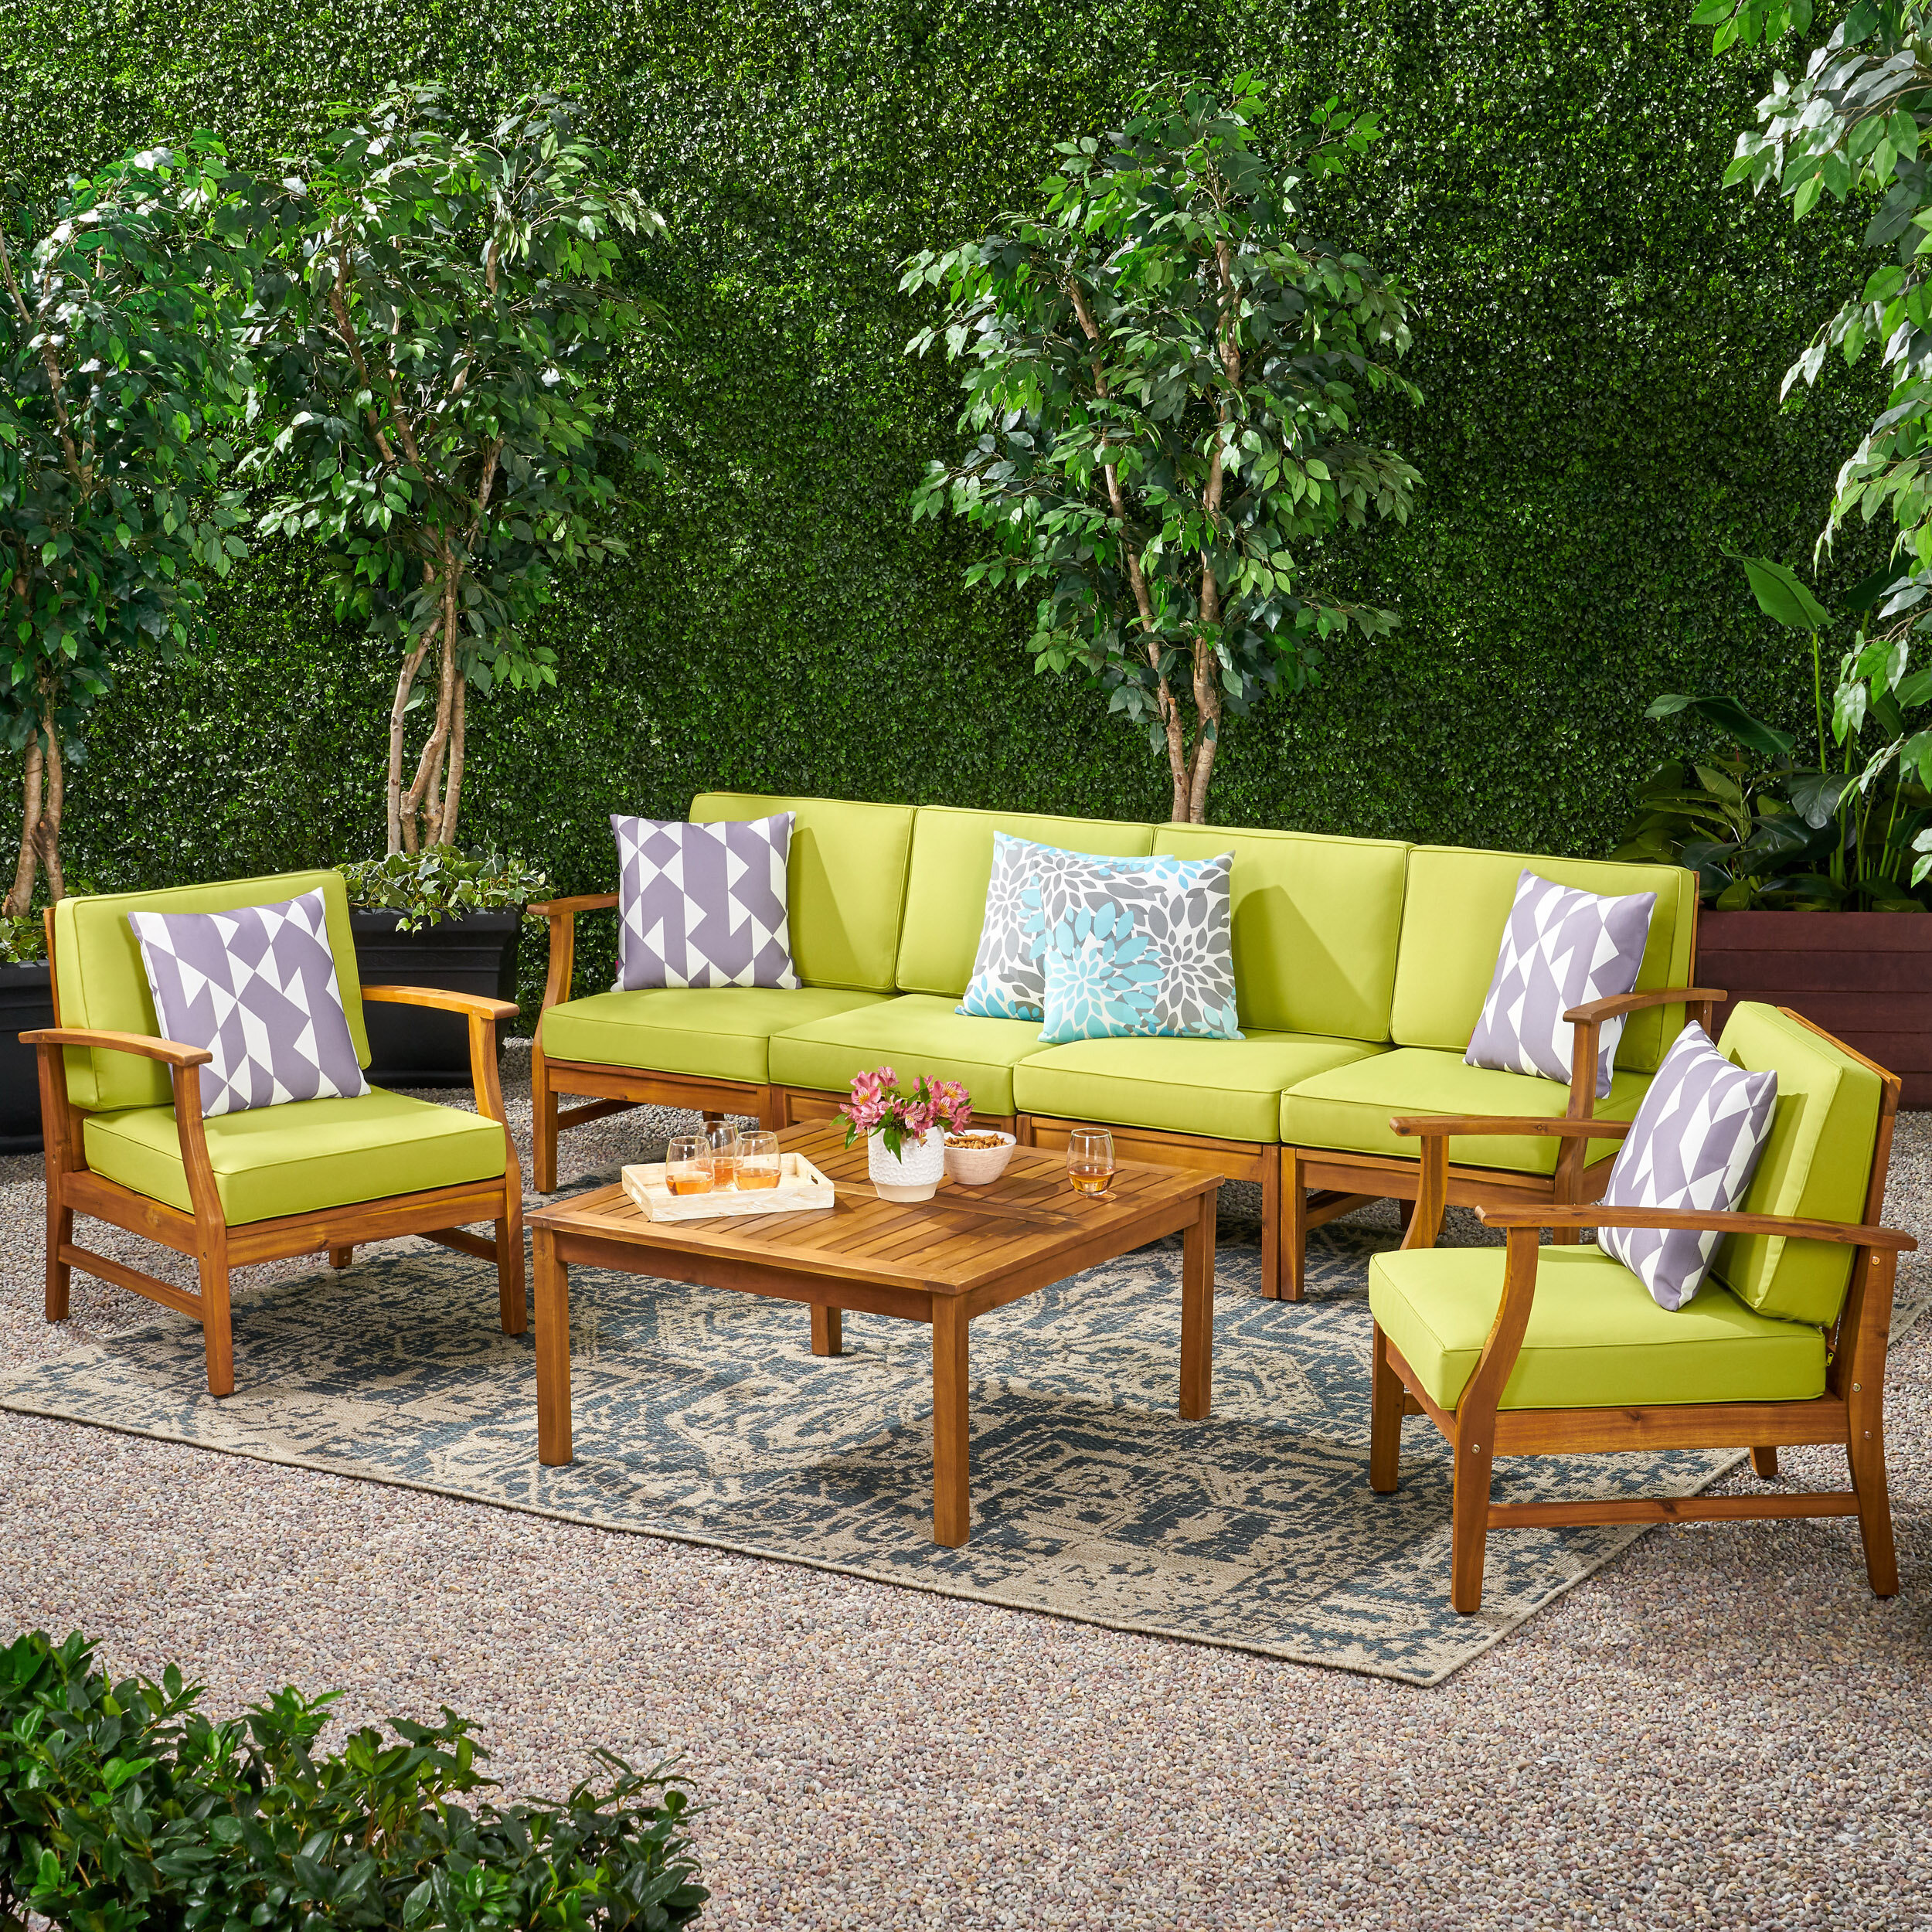 5 6 Person Patio Conversation Sets Up to 30% Off Through 8